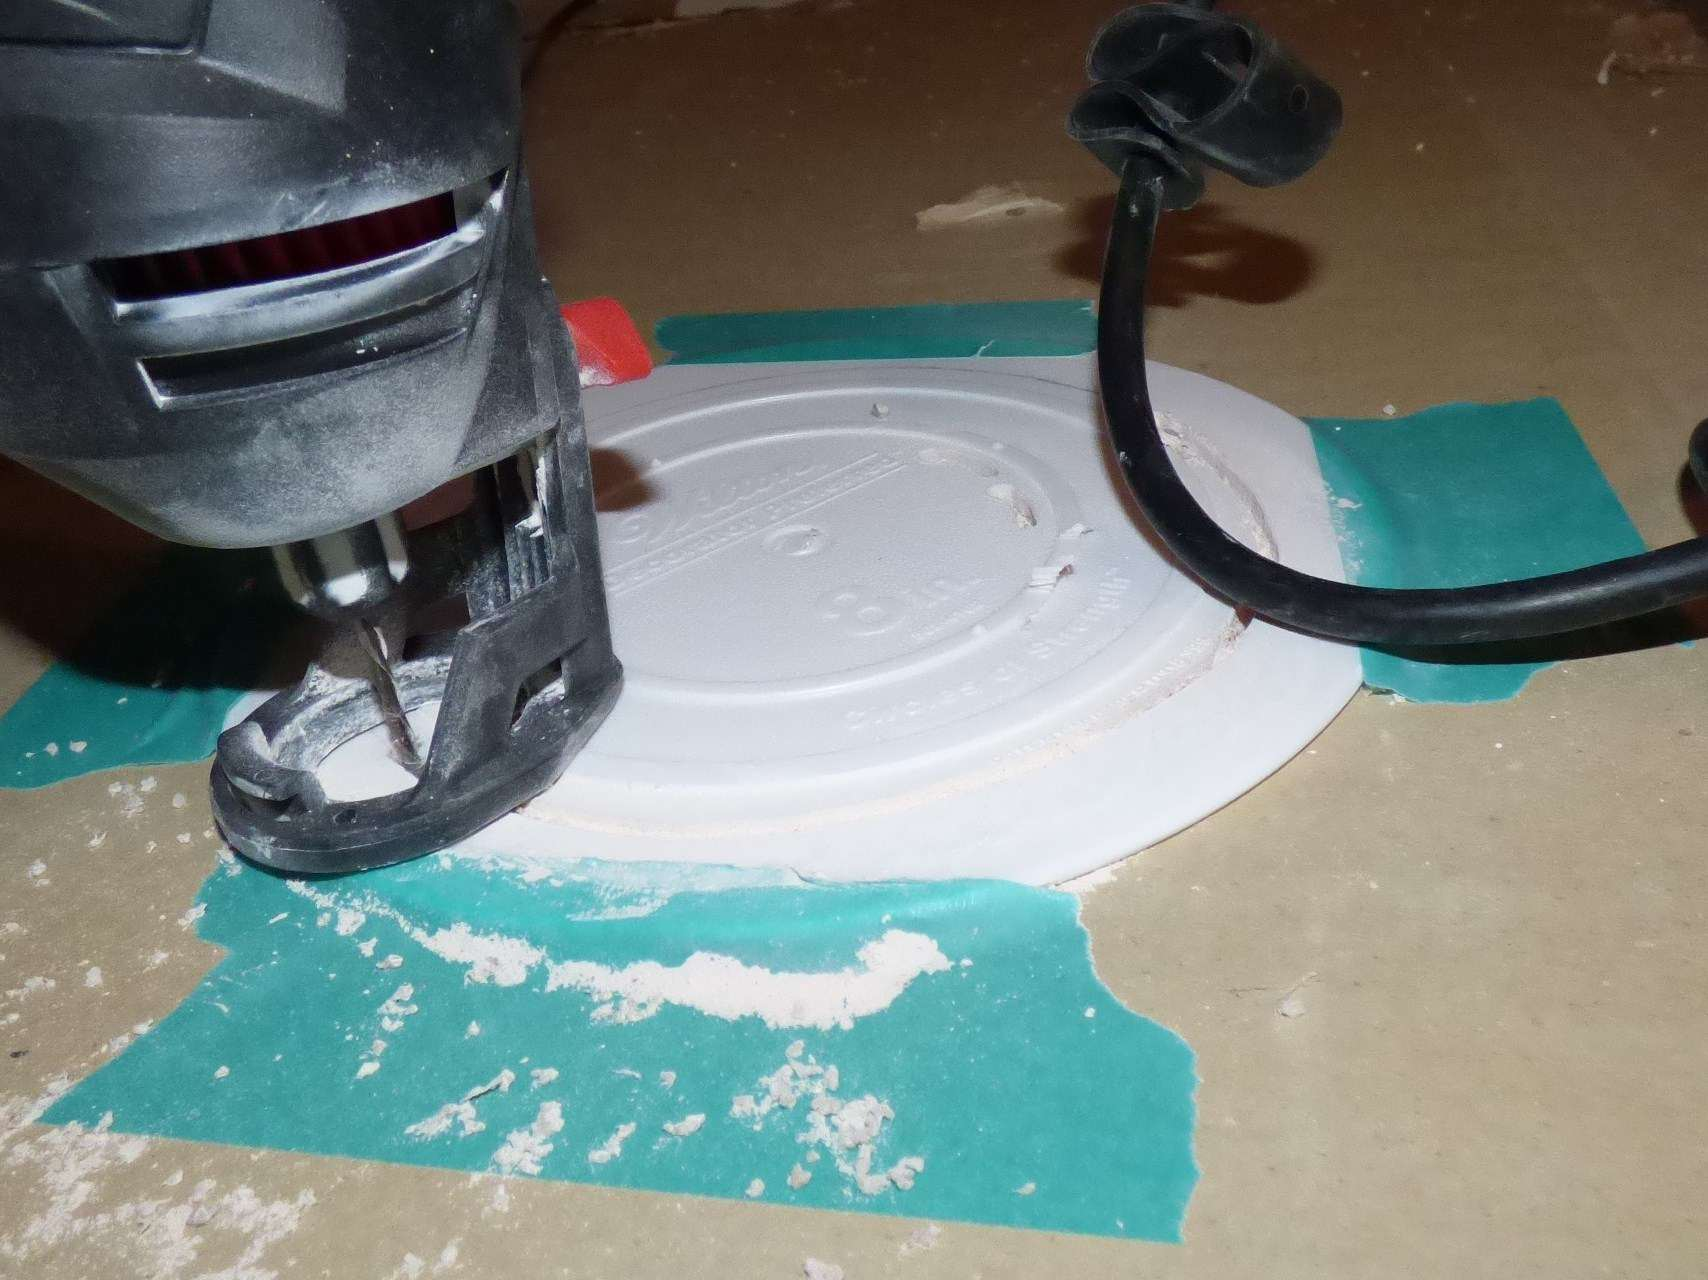 Easy fix for ceiling hole too big for recessed light dailygadgetfo Images